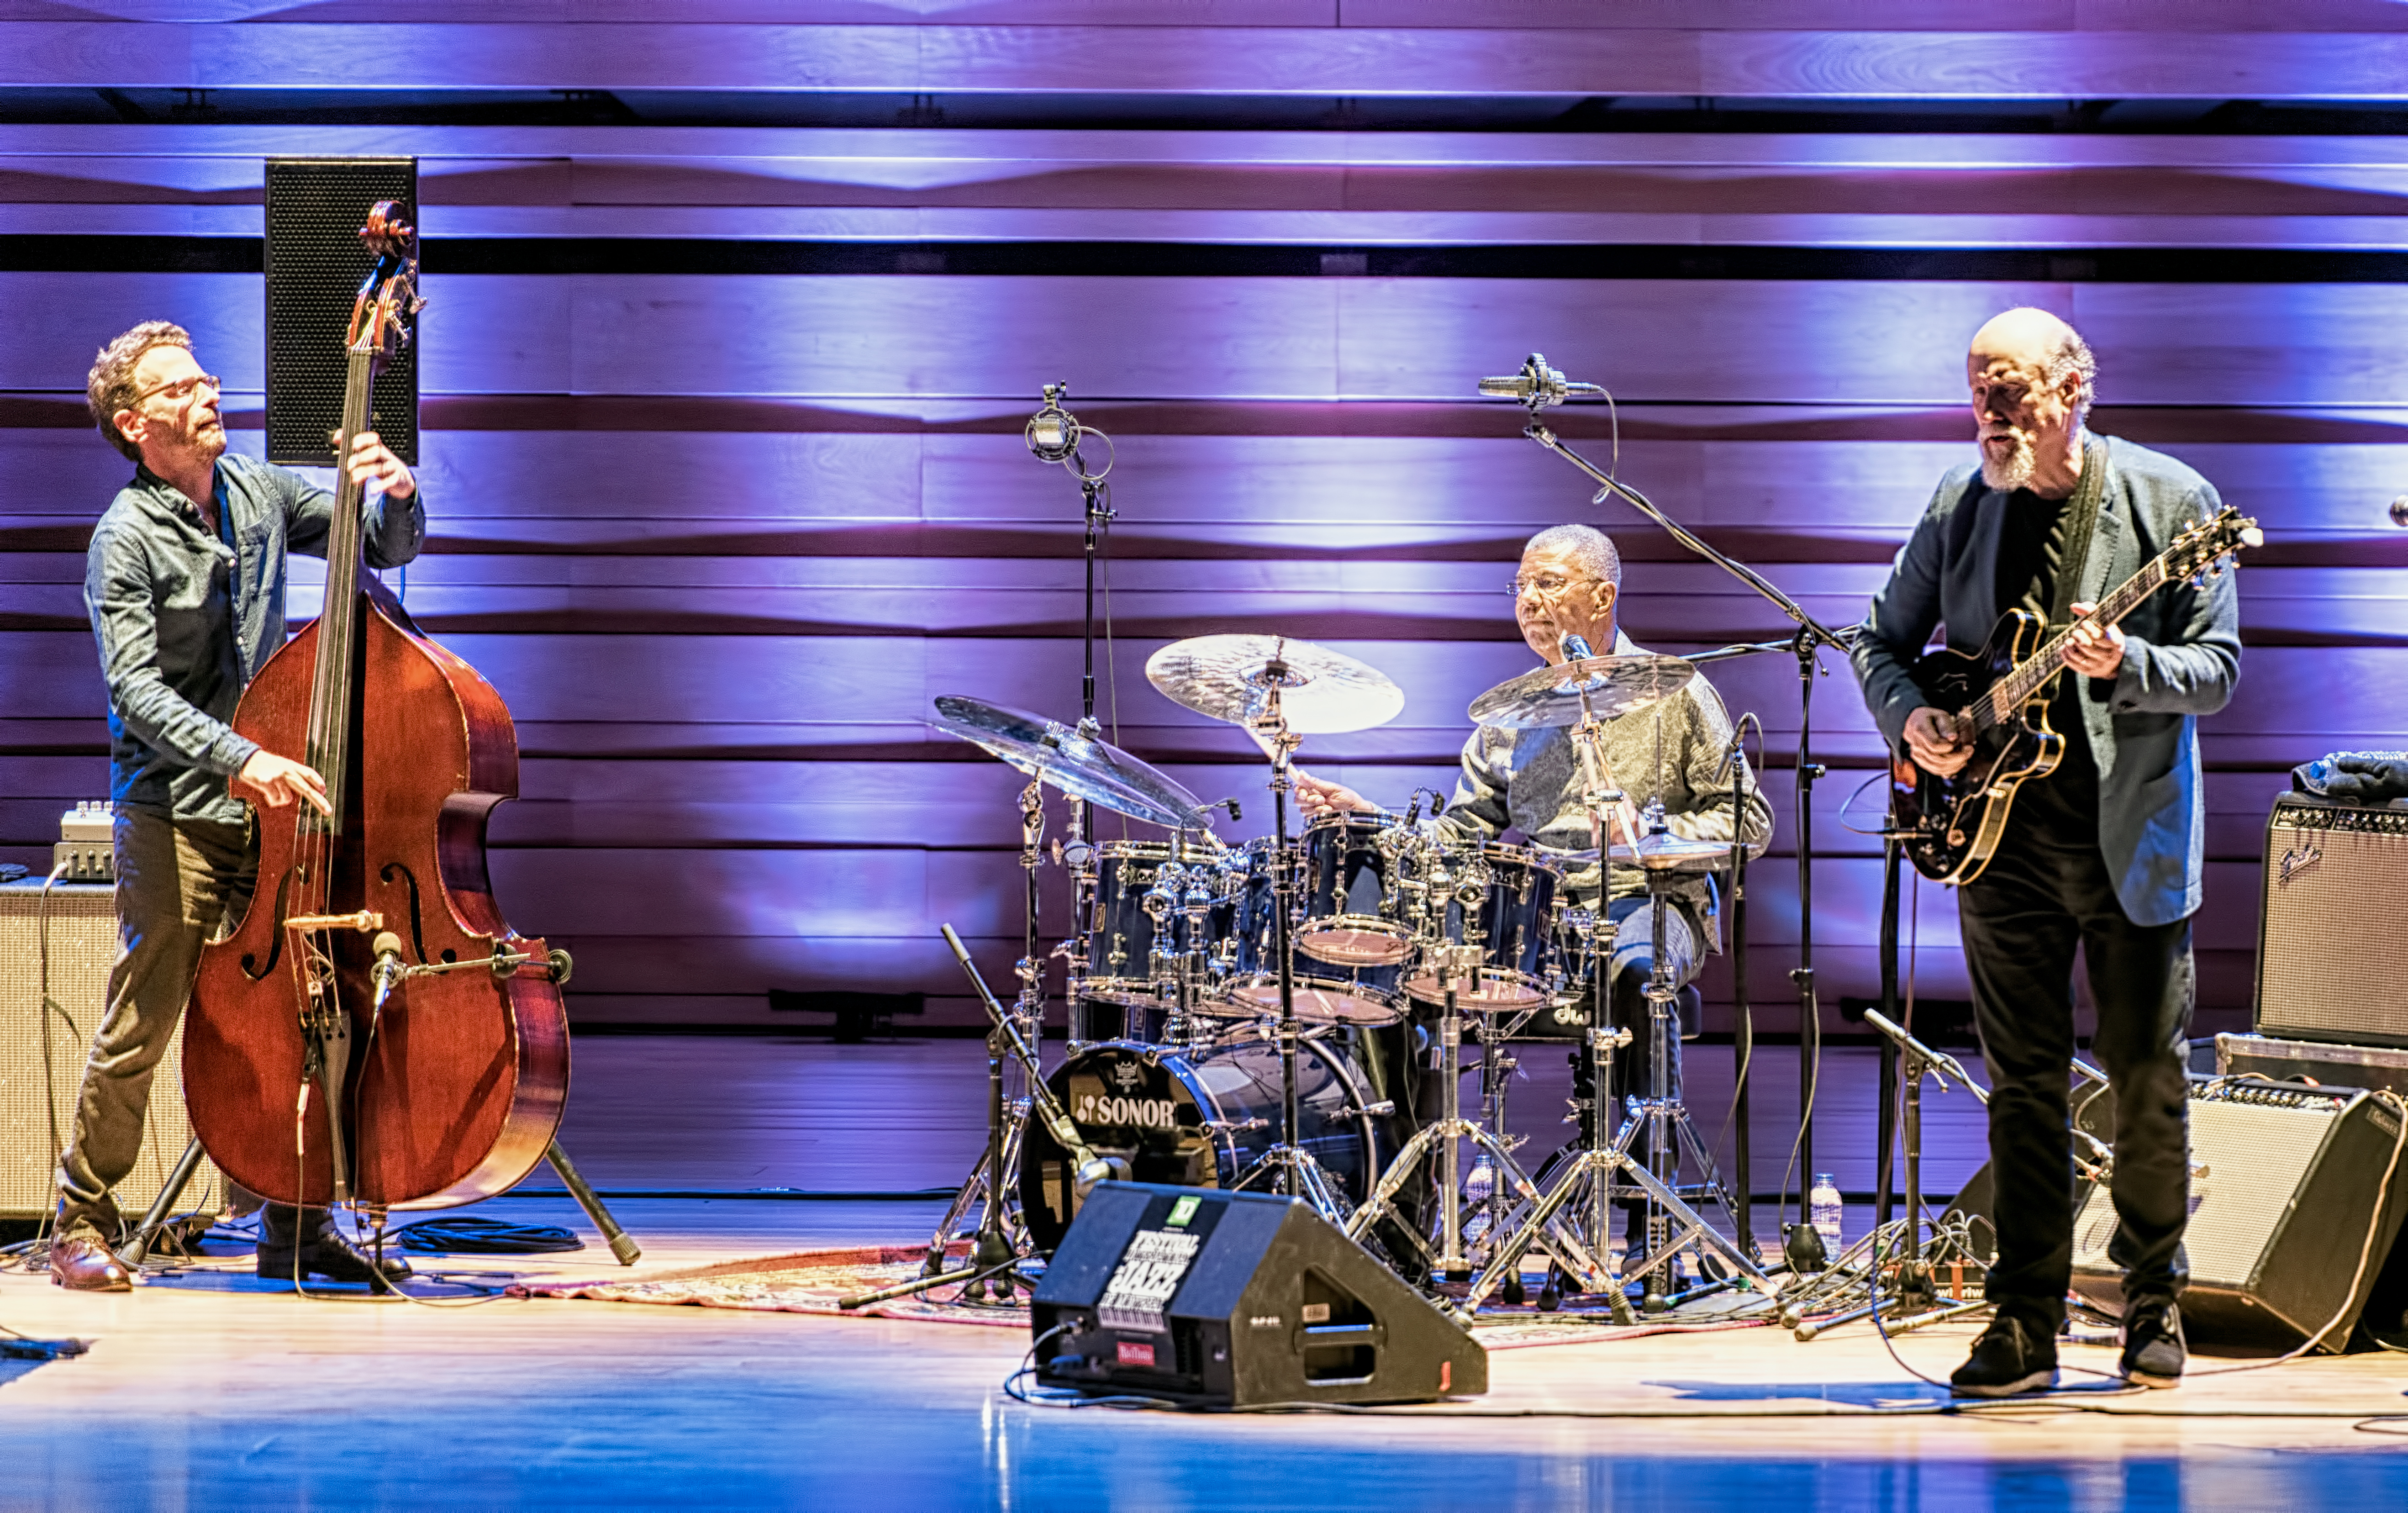 Larry Grenadier, Jack DeJohnette and John Scofield with Hudson at The Montreal International Jazz Festival 2017